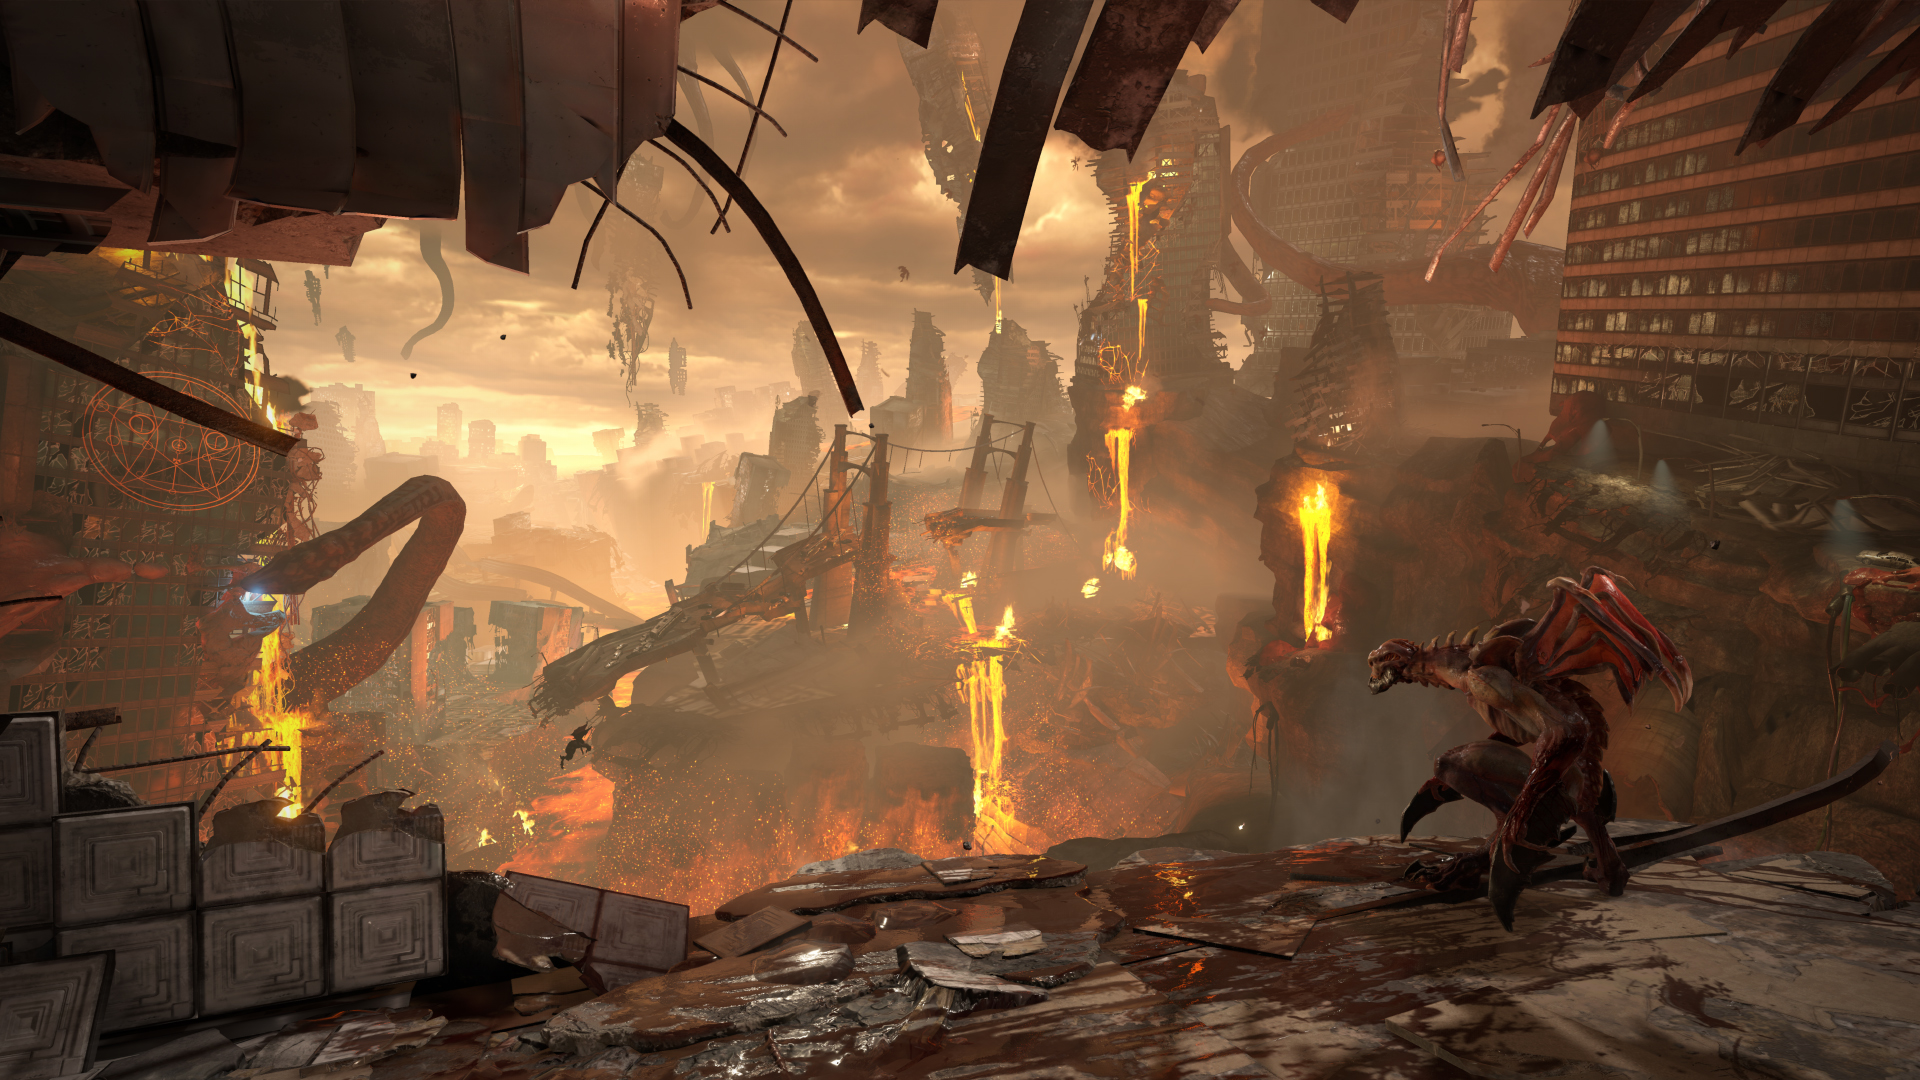 DOOM Is a Bloody, Balls to the Wall Video Game Triumph